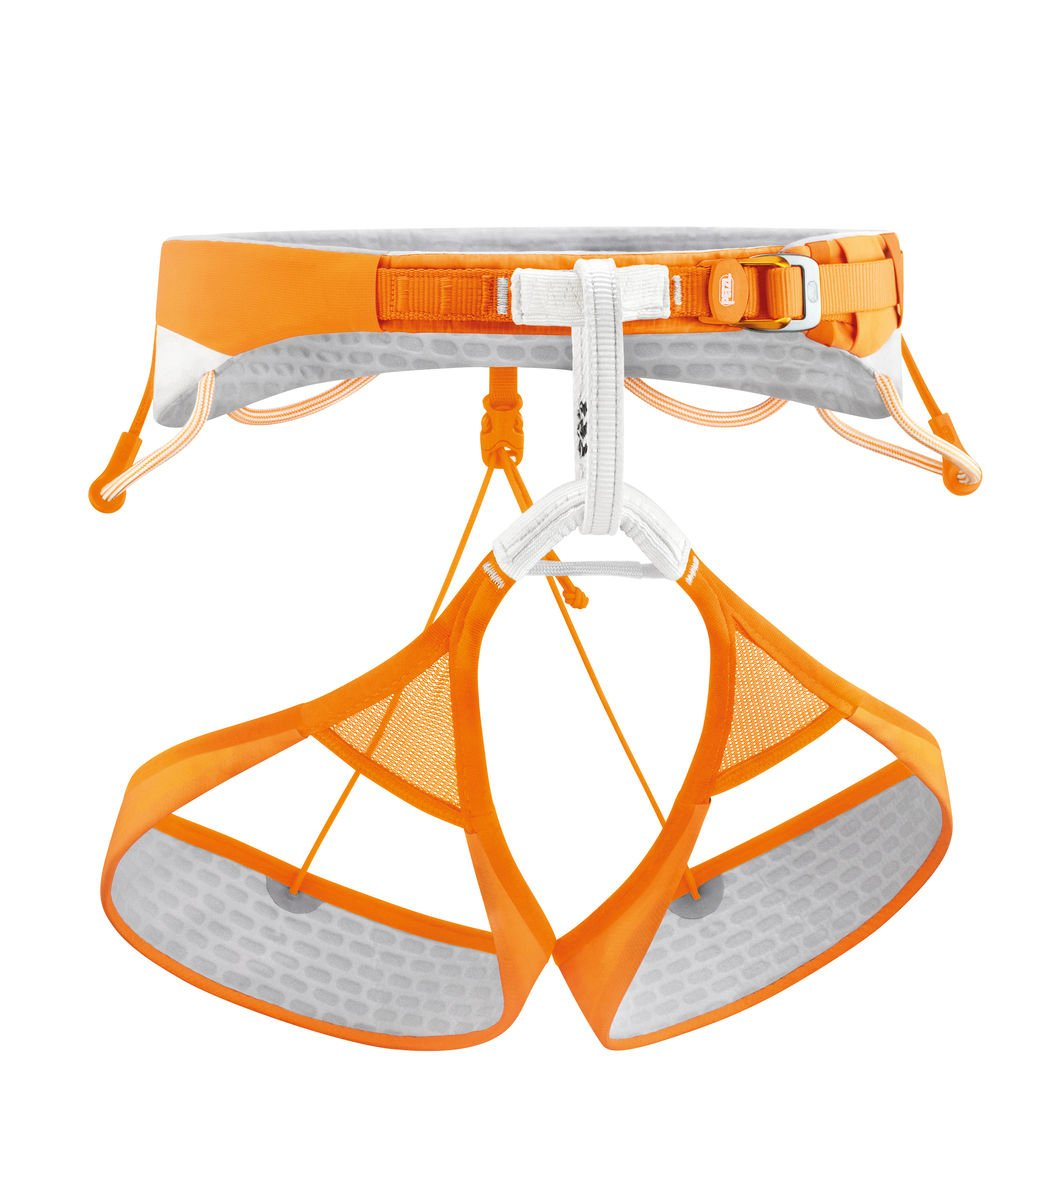 Large SITTA PETZL Climbing Harness for Pros